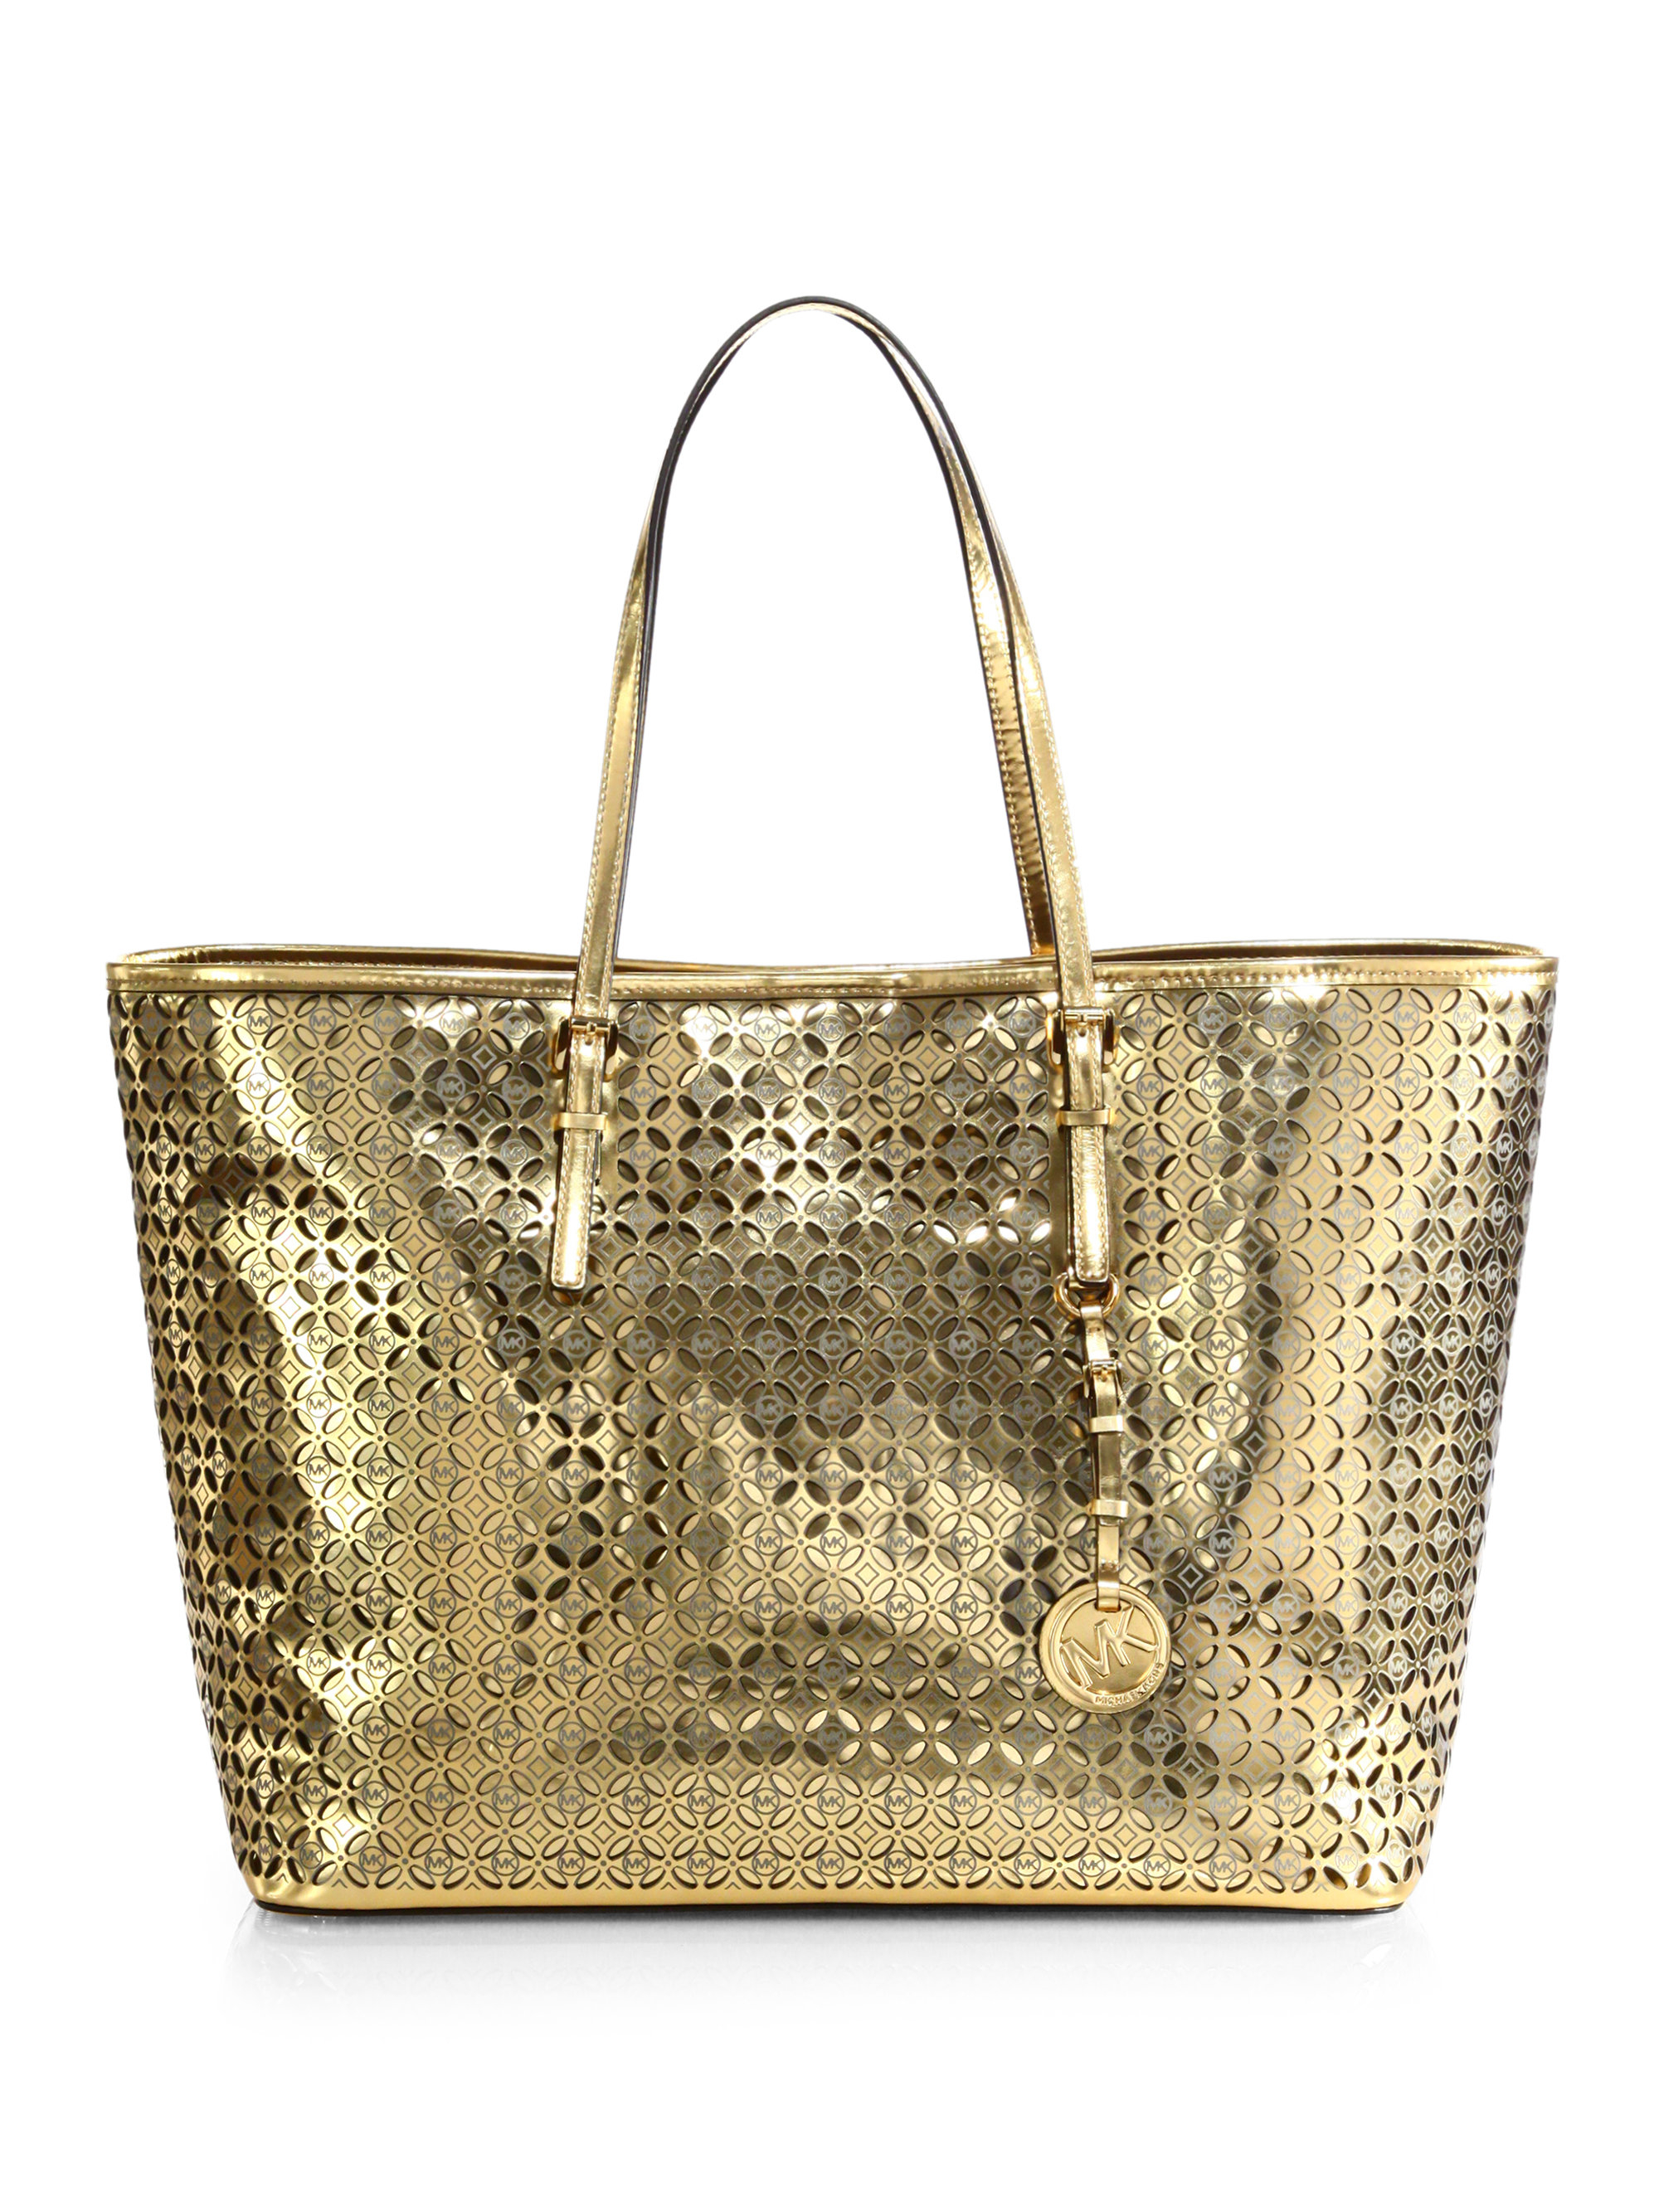 Michael Kors Gold Metallic Purse Best Image Ccdbb